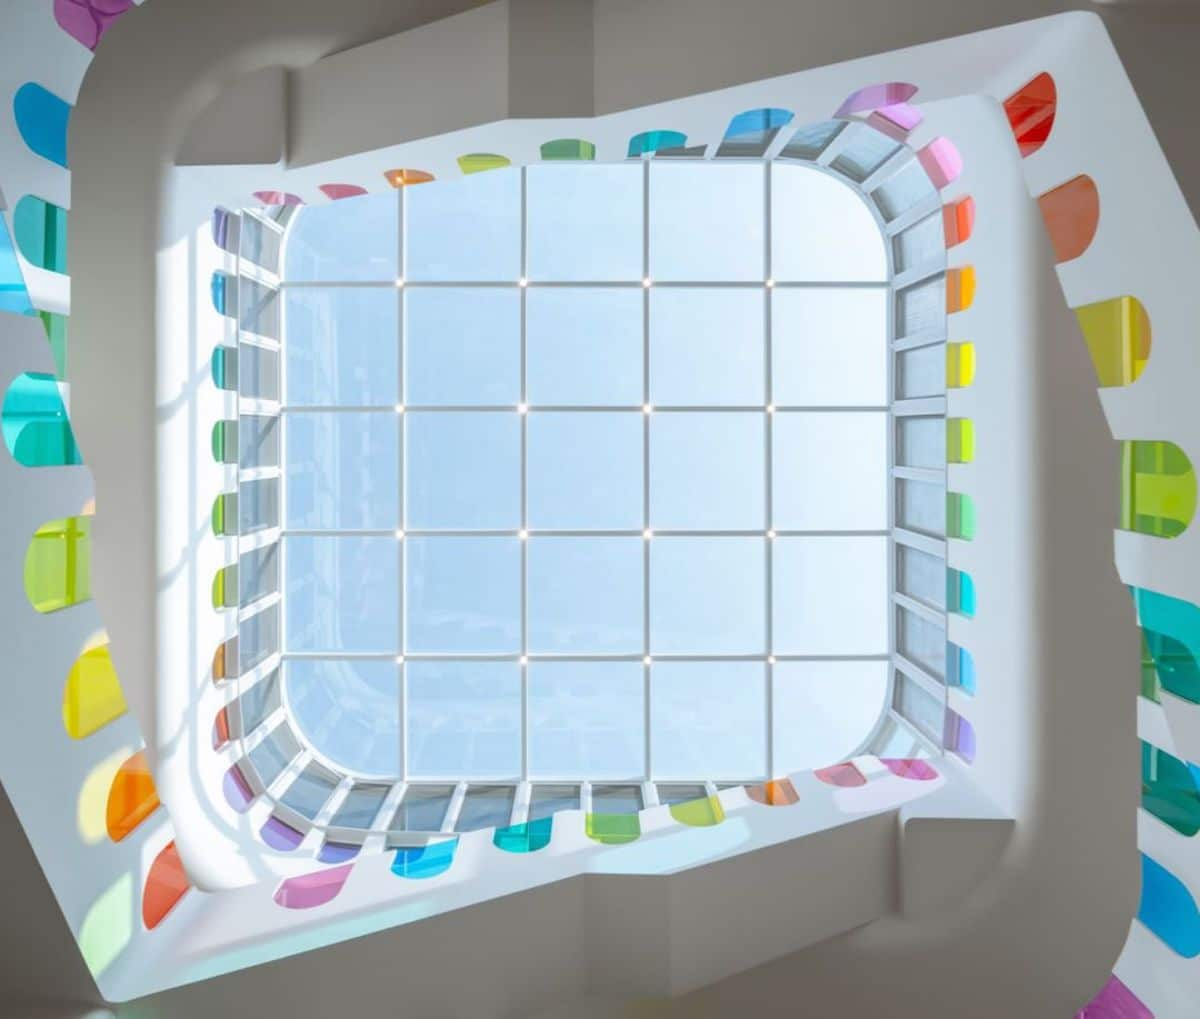 Skylight at Rainbow Kindergarten in China